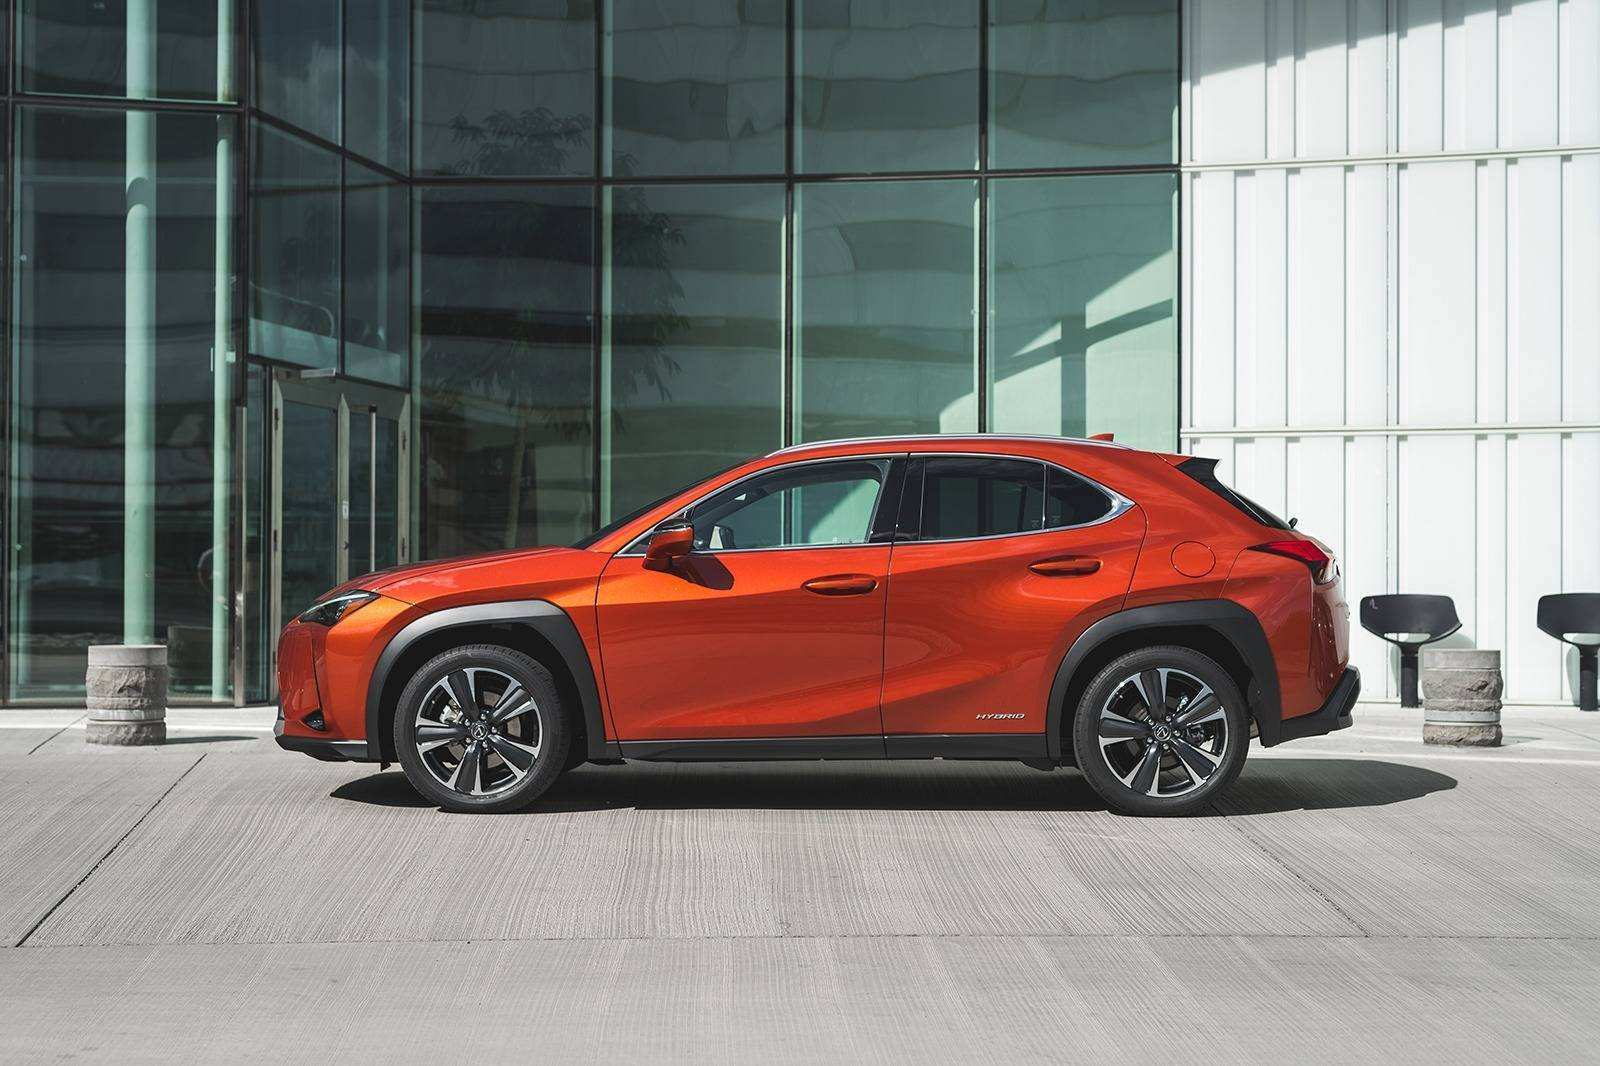 44 All New 2019 Lexus Ux200 Performance